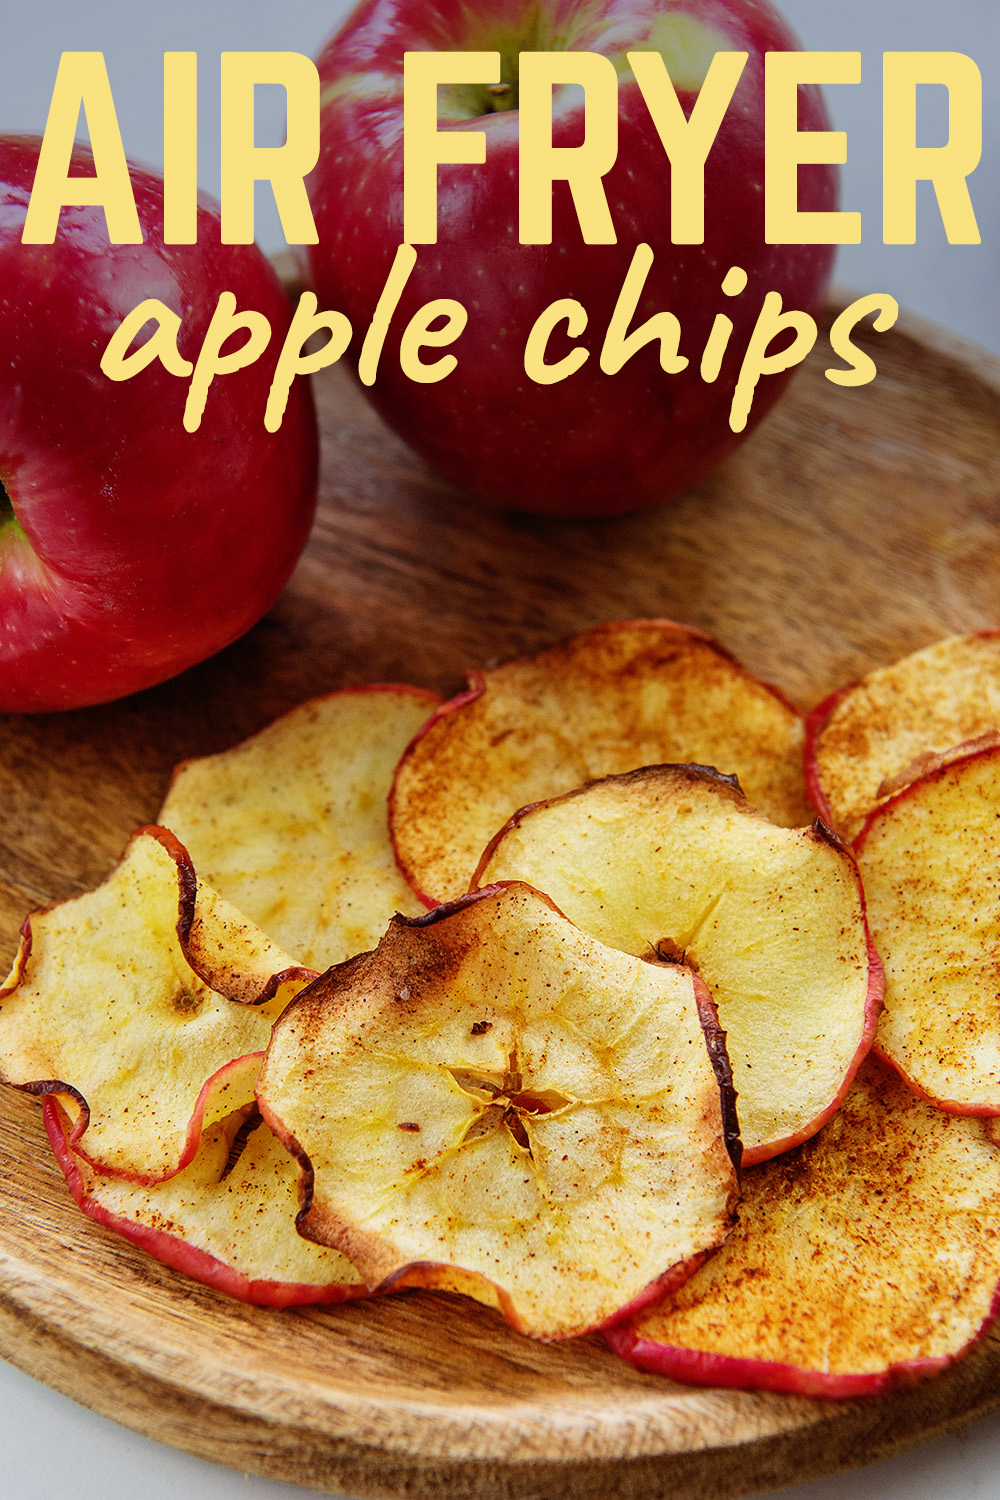 cooked apple chips on a plate in front of two apples